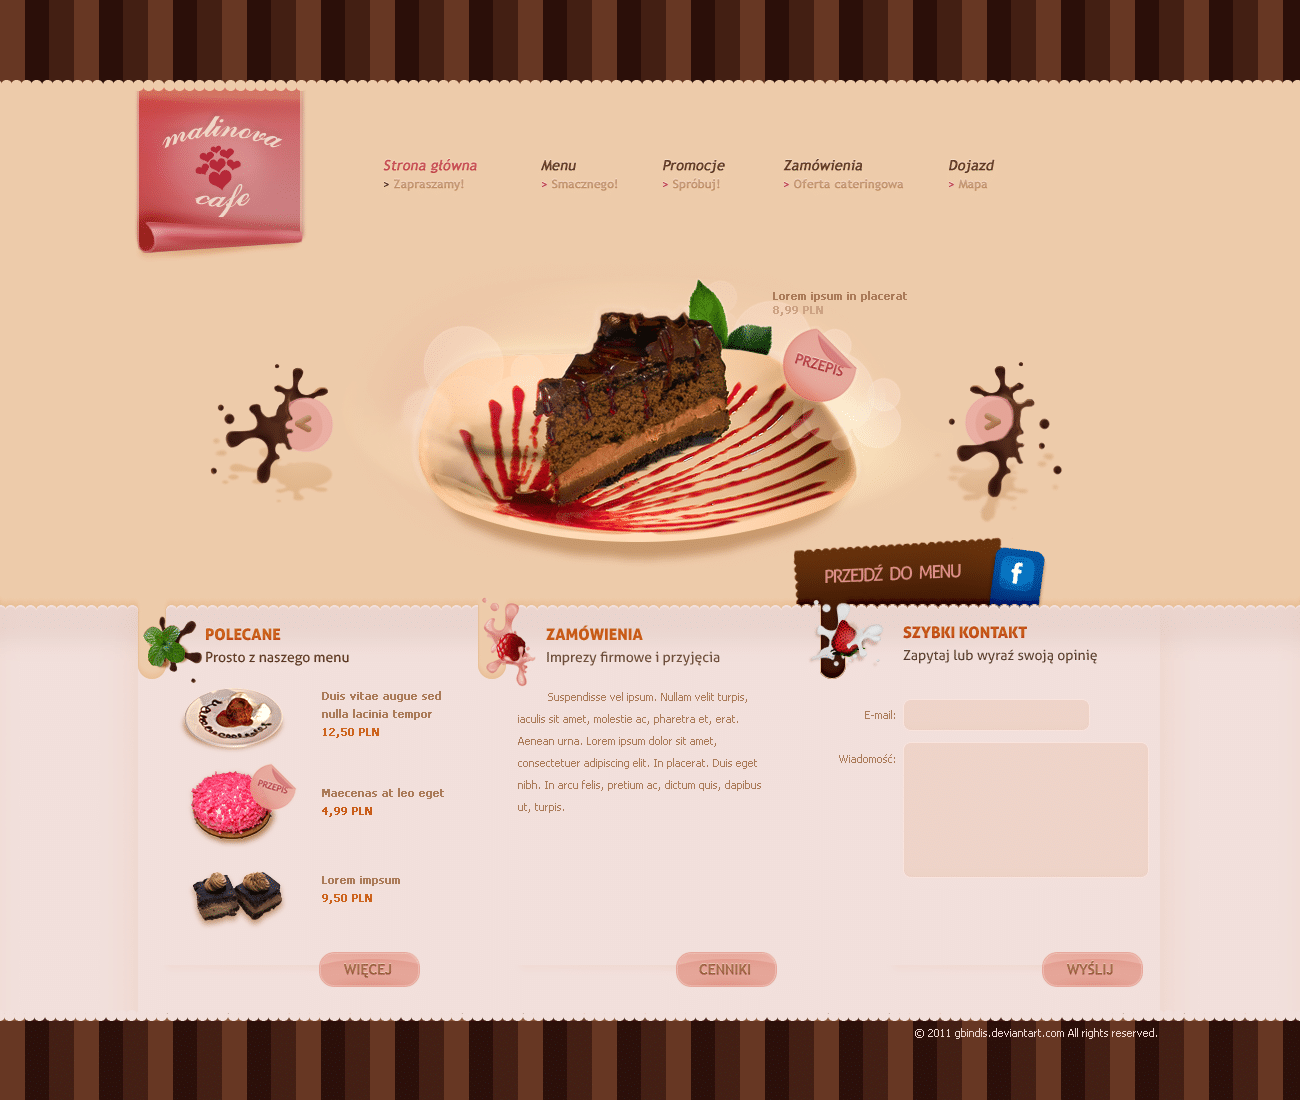 Malinova Cafe - Bakery and Coffe Websites Design Inspiration